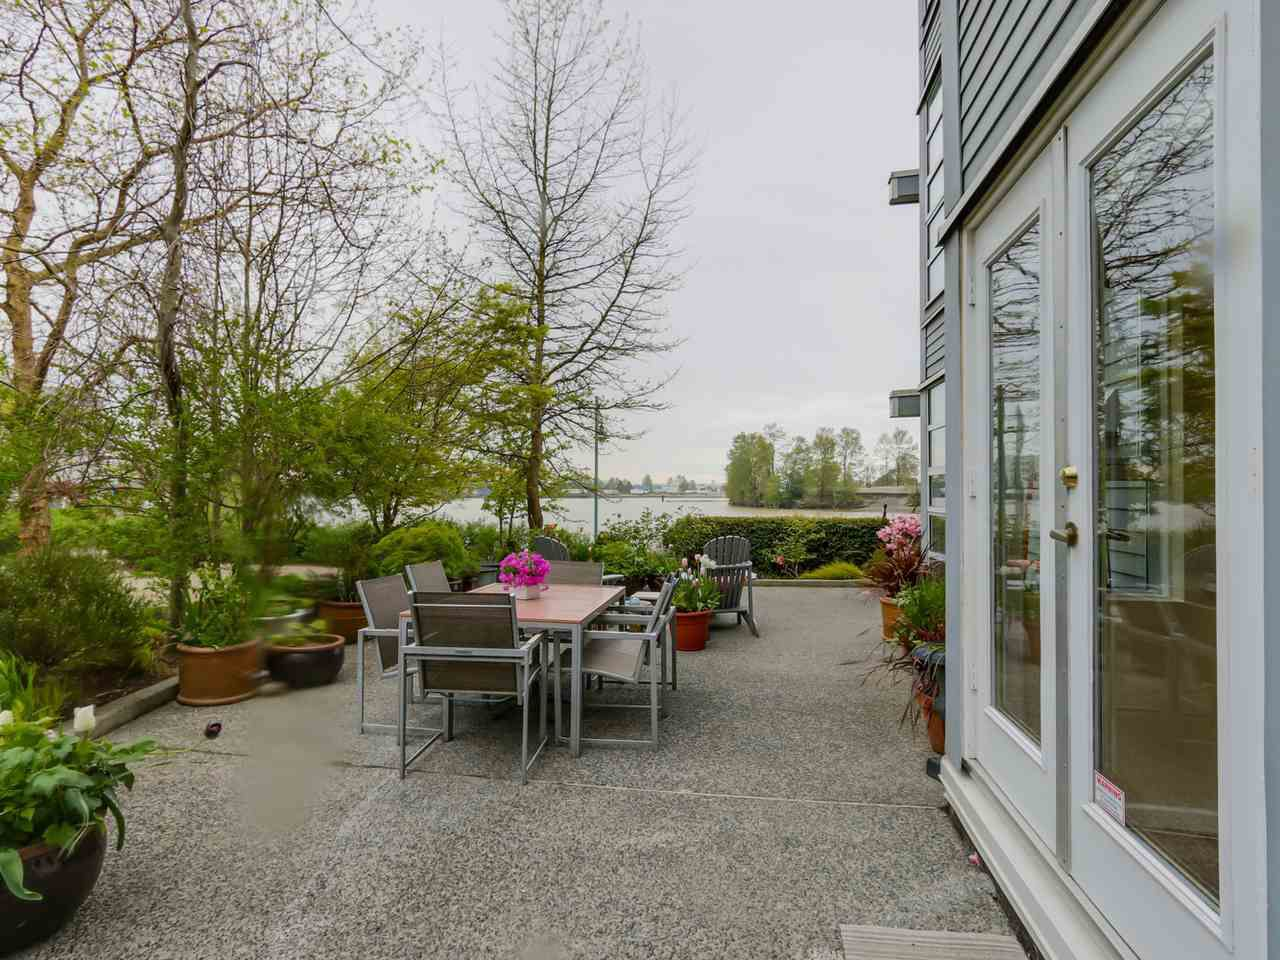 "Main Photo: 108 1880 E KENT AVENUE SOUTH in Vancouver: Fraserview VE Condo for sale in ""PILOT HOUSE AT TUGBOAT LANDING"" (Vancouver East)  : MLS®# R2057021"